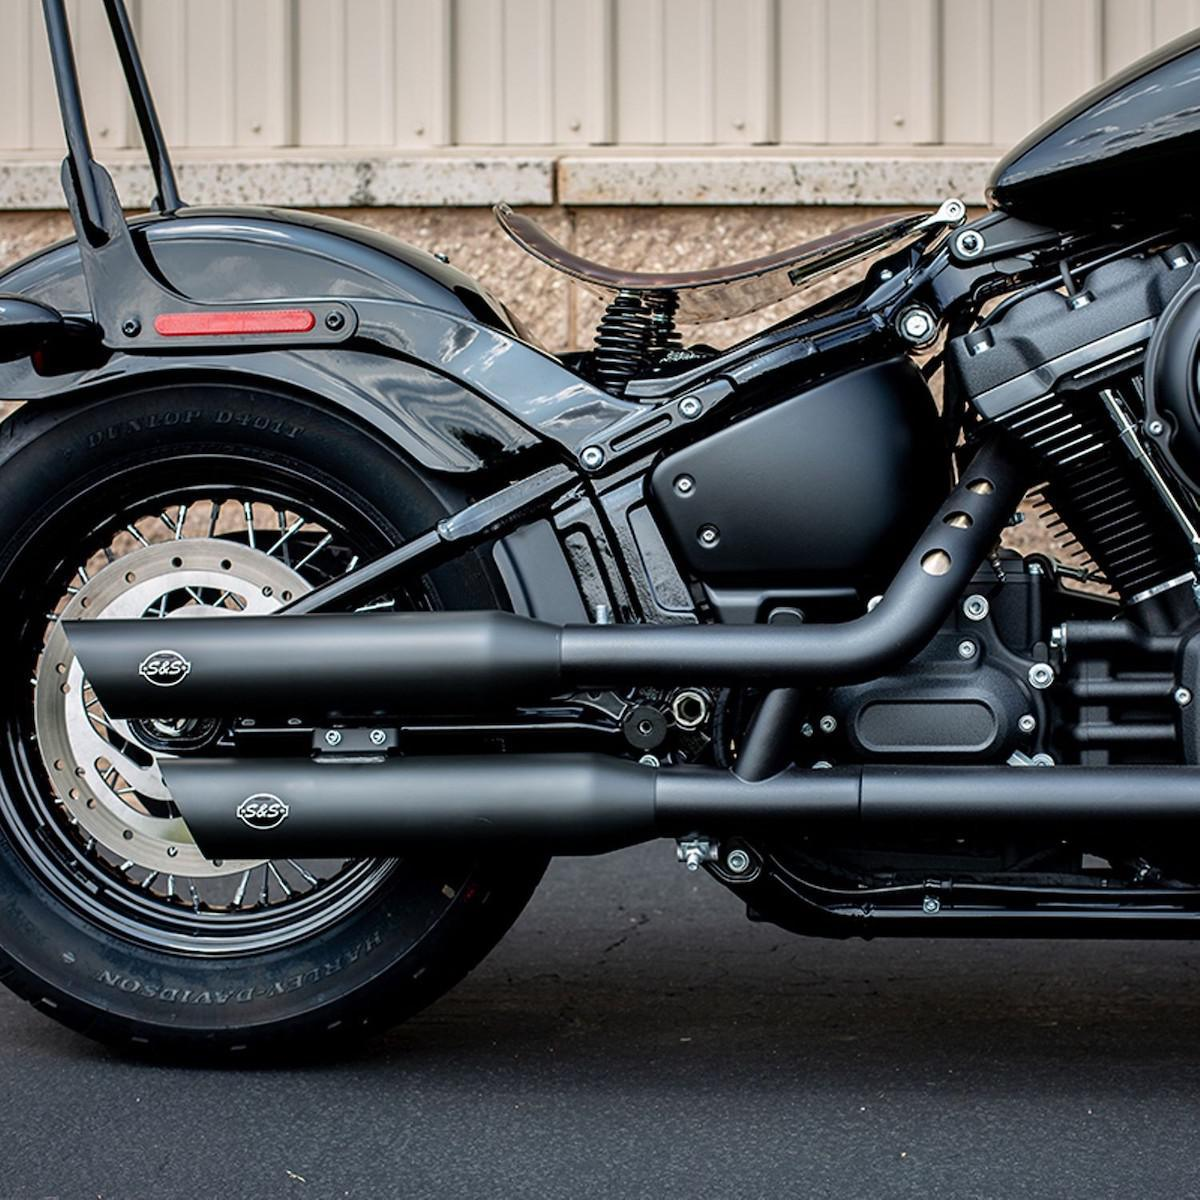 S&S CYCLE - Grand National and Slash Cut Slip Ons for M8 HD Softail Models